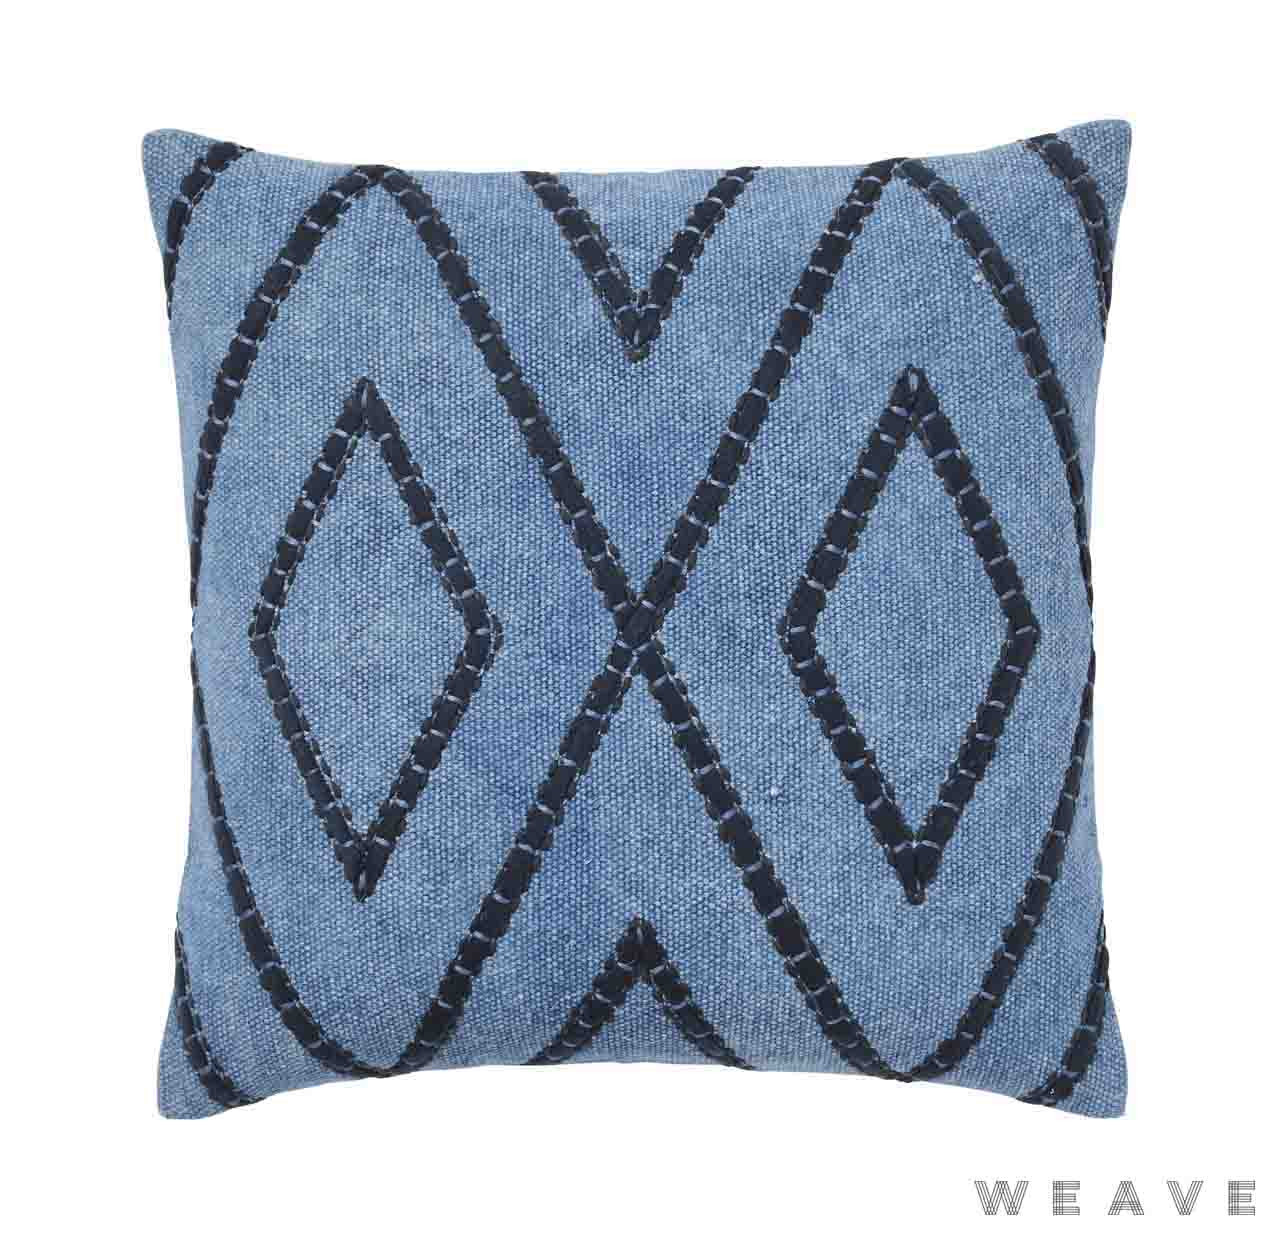 Weave - Shiso Cushion - Pigment (Pack of 2)  | Cusion Fabric - Blue, Weave, Diamond - Harlequin